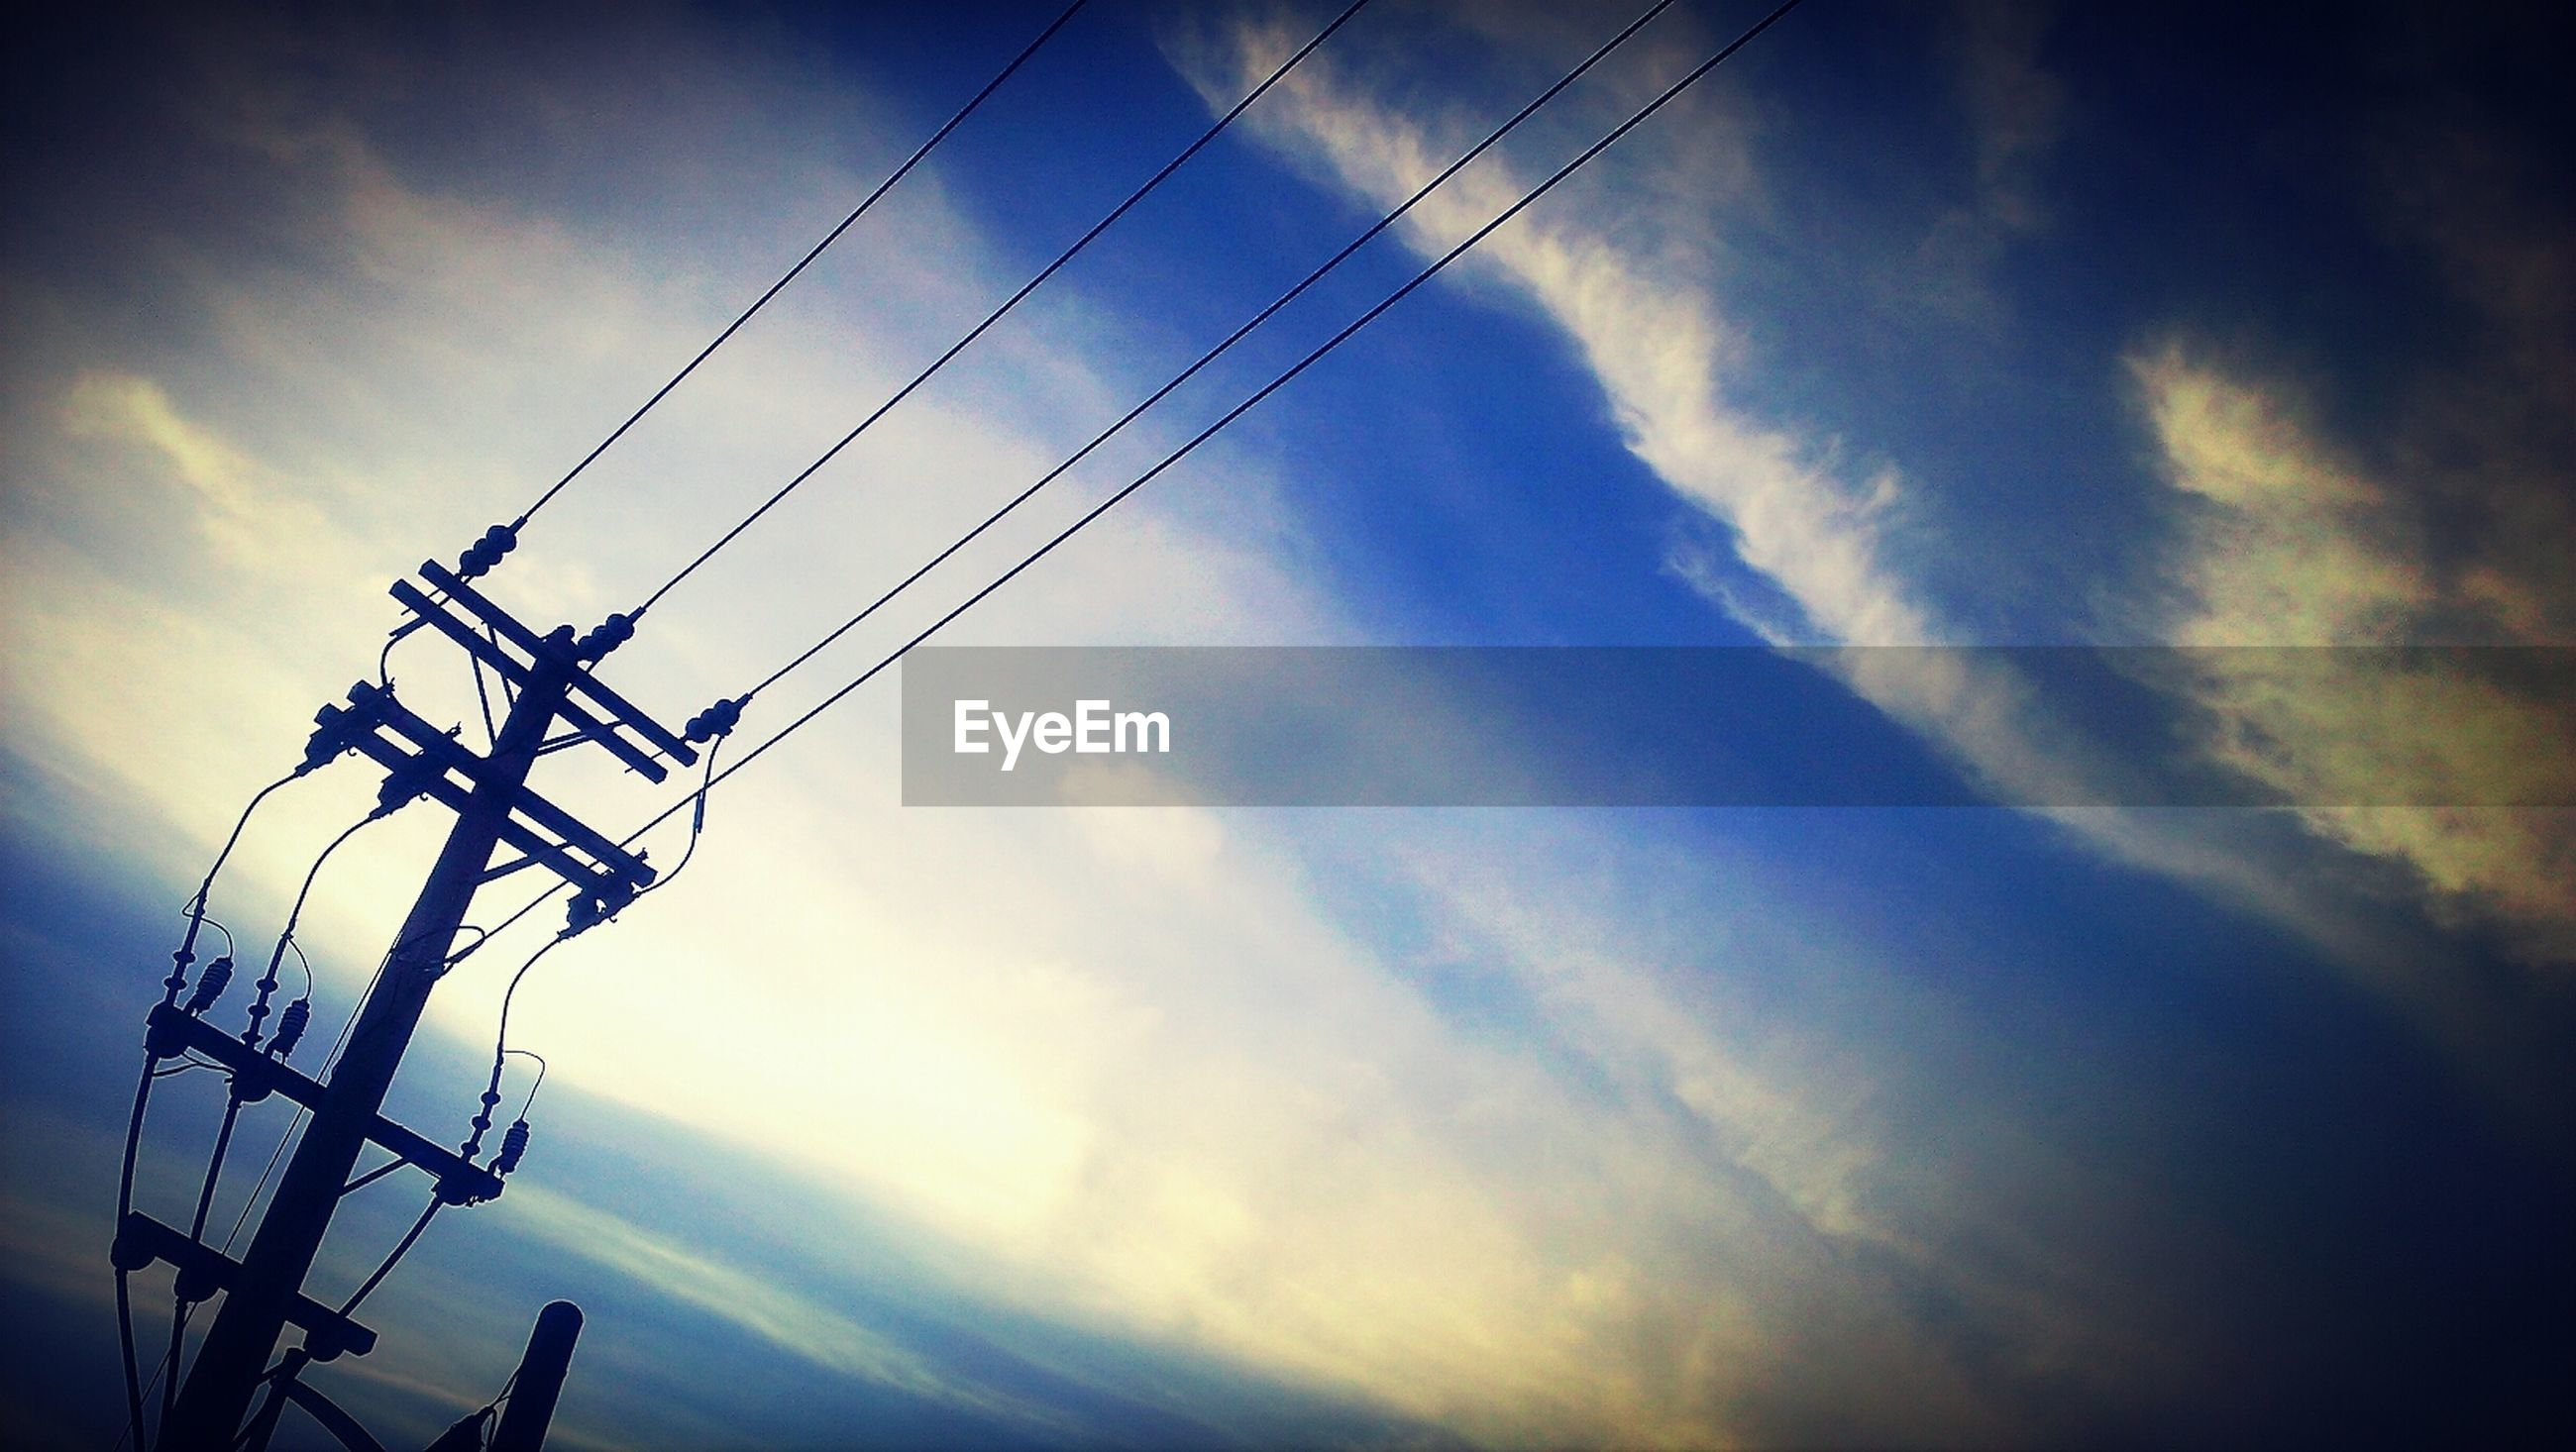 High section of electricity pylon against clouds